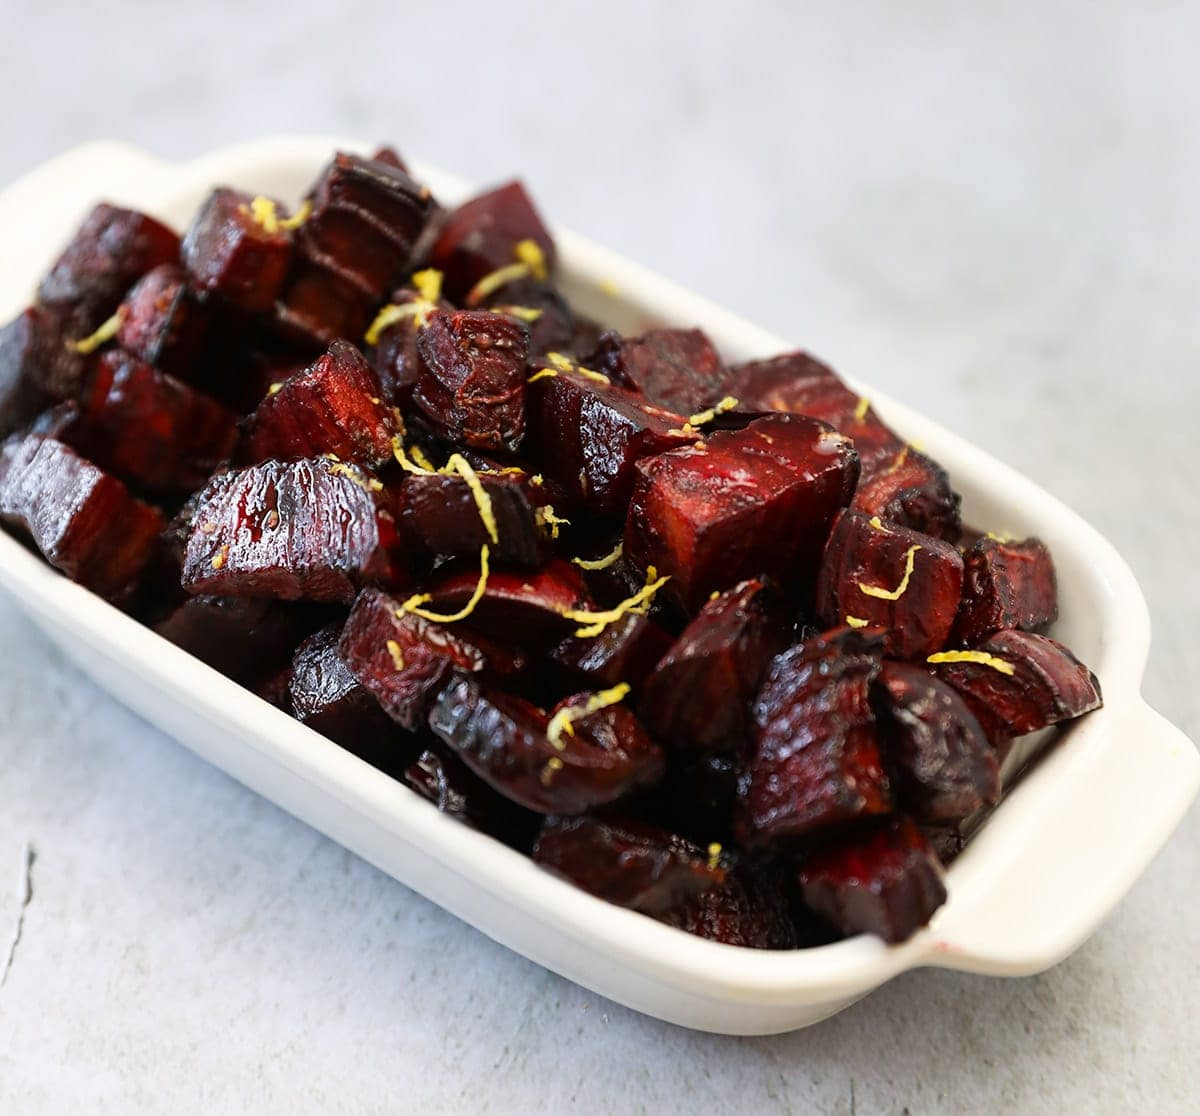 Air fryer roasted beets in a white dish on a white background